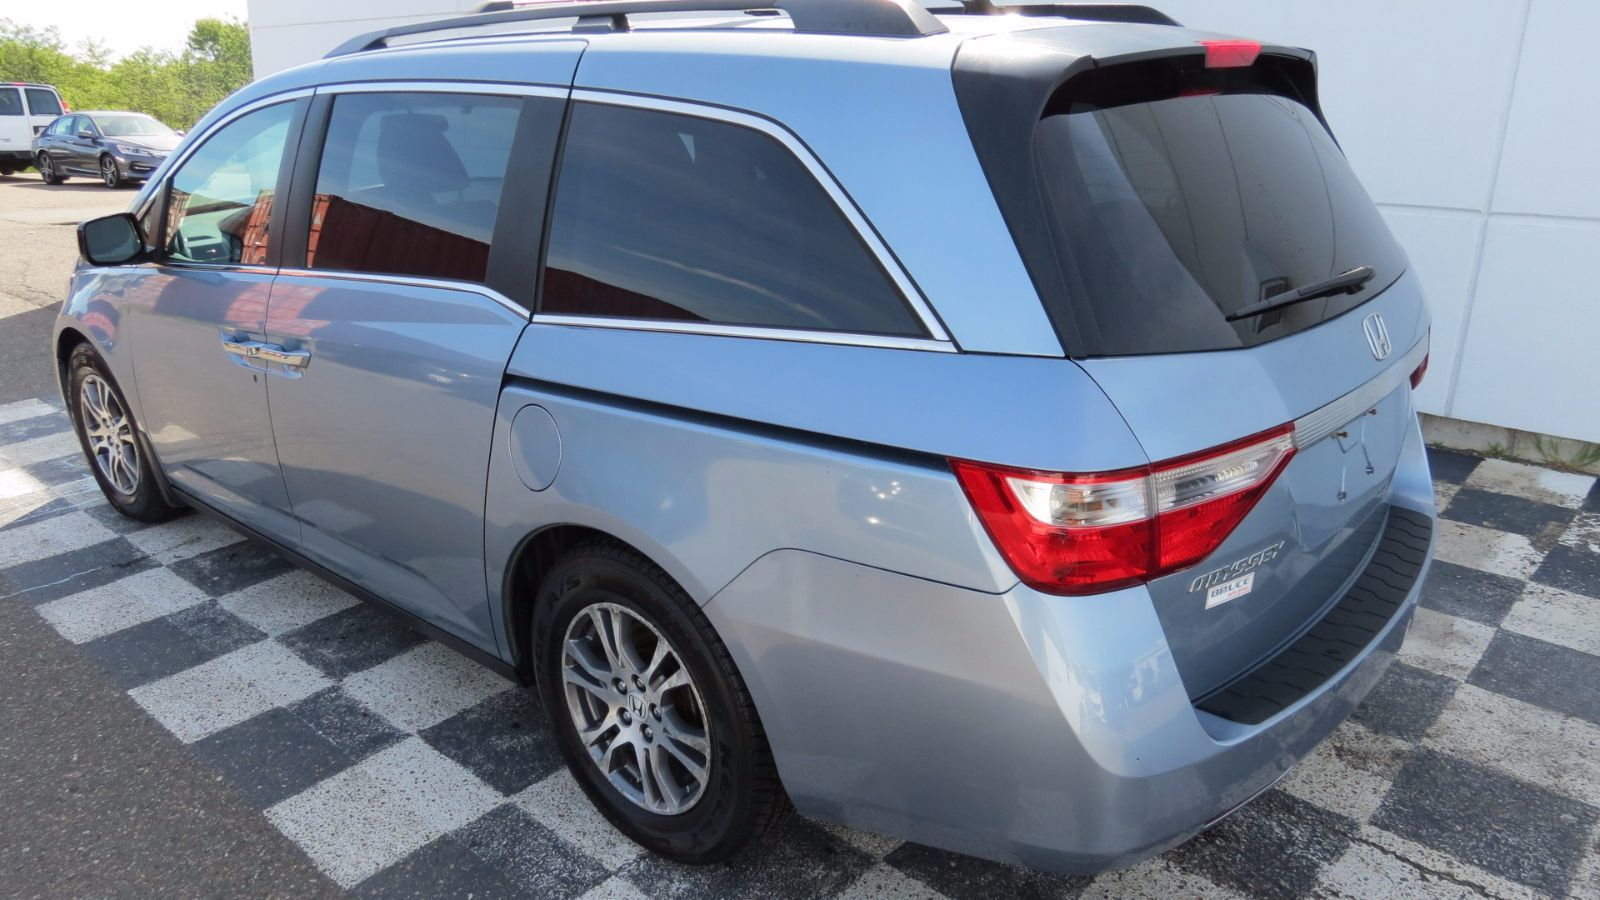 Used 2011 Honda Odyssey EX 3.5L 6 CYL I-VTEC AUTOMATIC FWD - 8 PASSENGERS in Middleton   H3940A